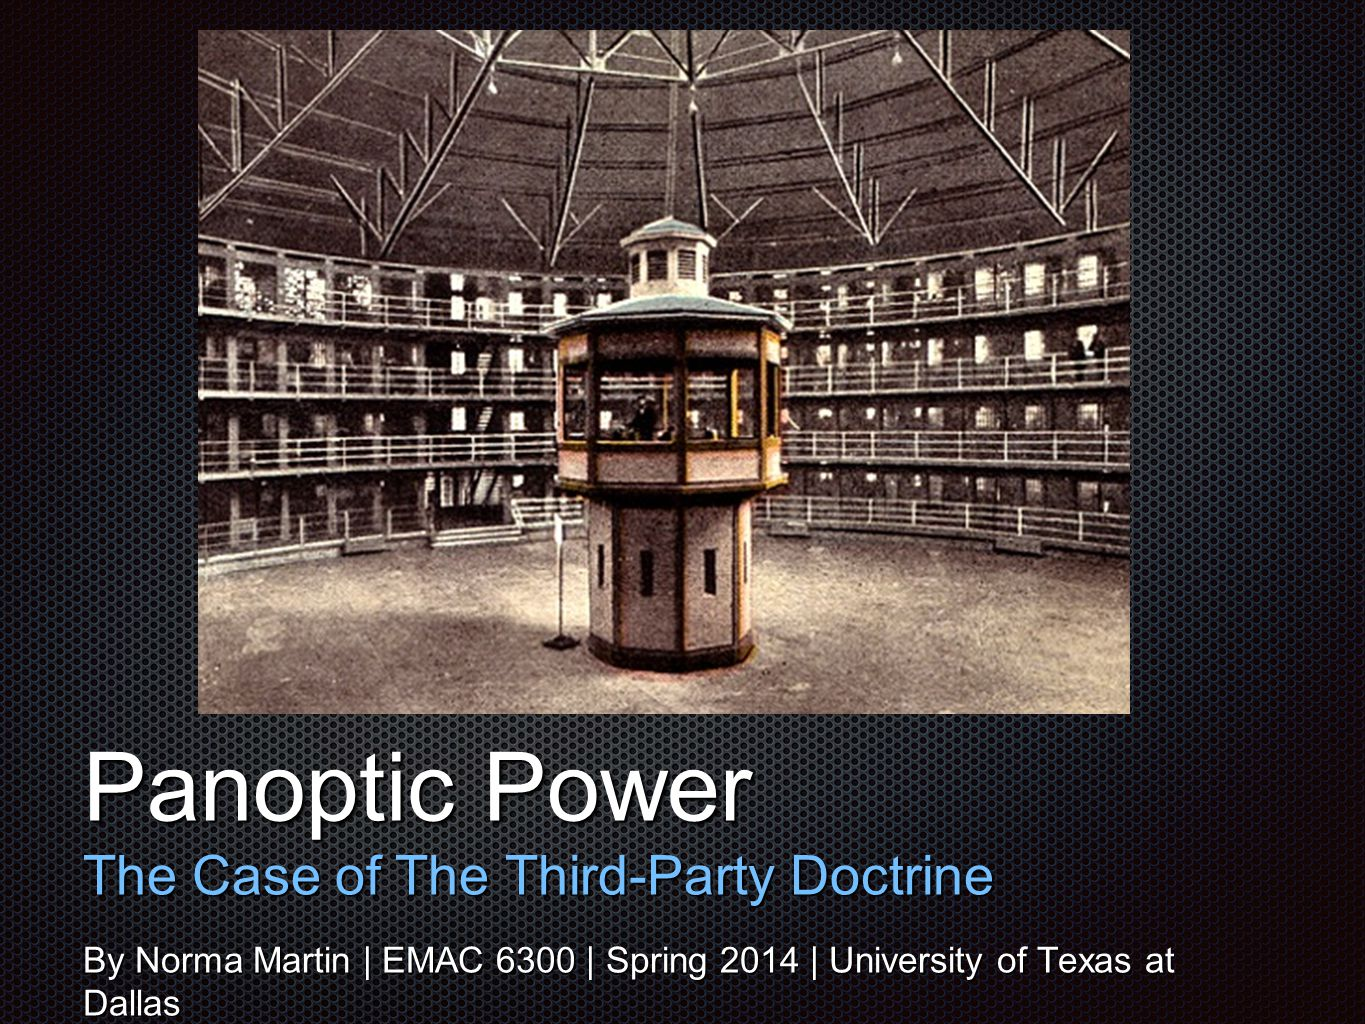 Tex t Panoptic Power The Case of The Third-Party Doctrine By Norma Martin | EMAC 6300 | Spring 2014 | University of Texas at Dallas